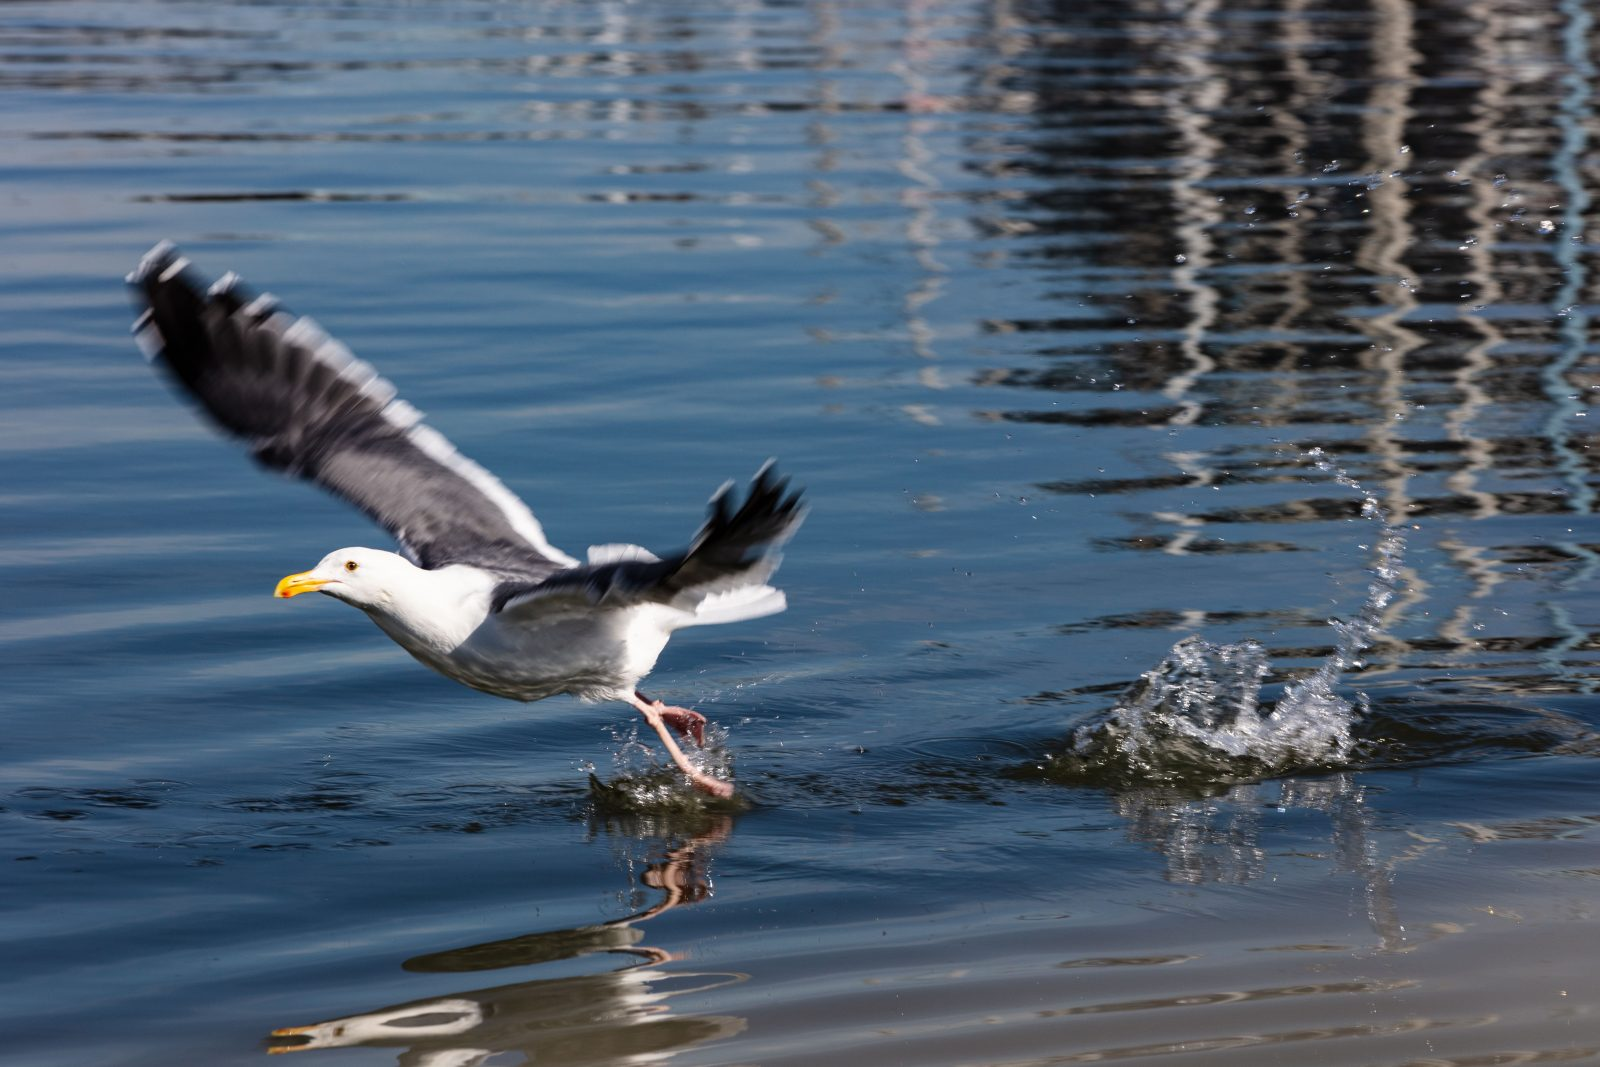 Gull Takeoff and Reflections